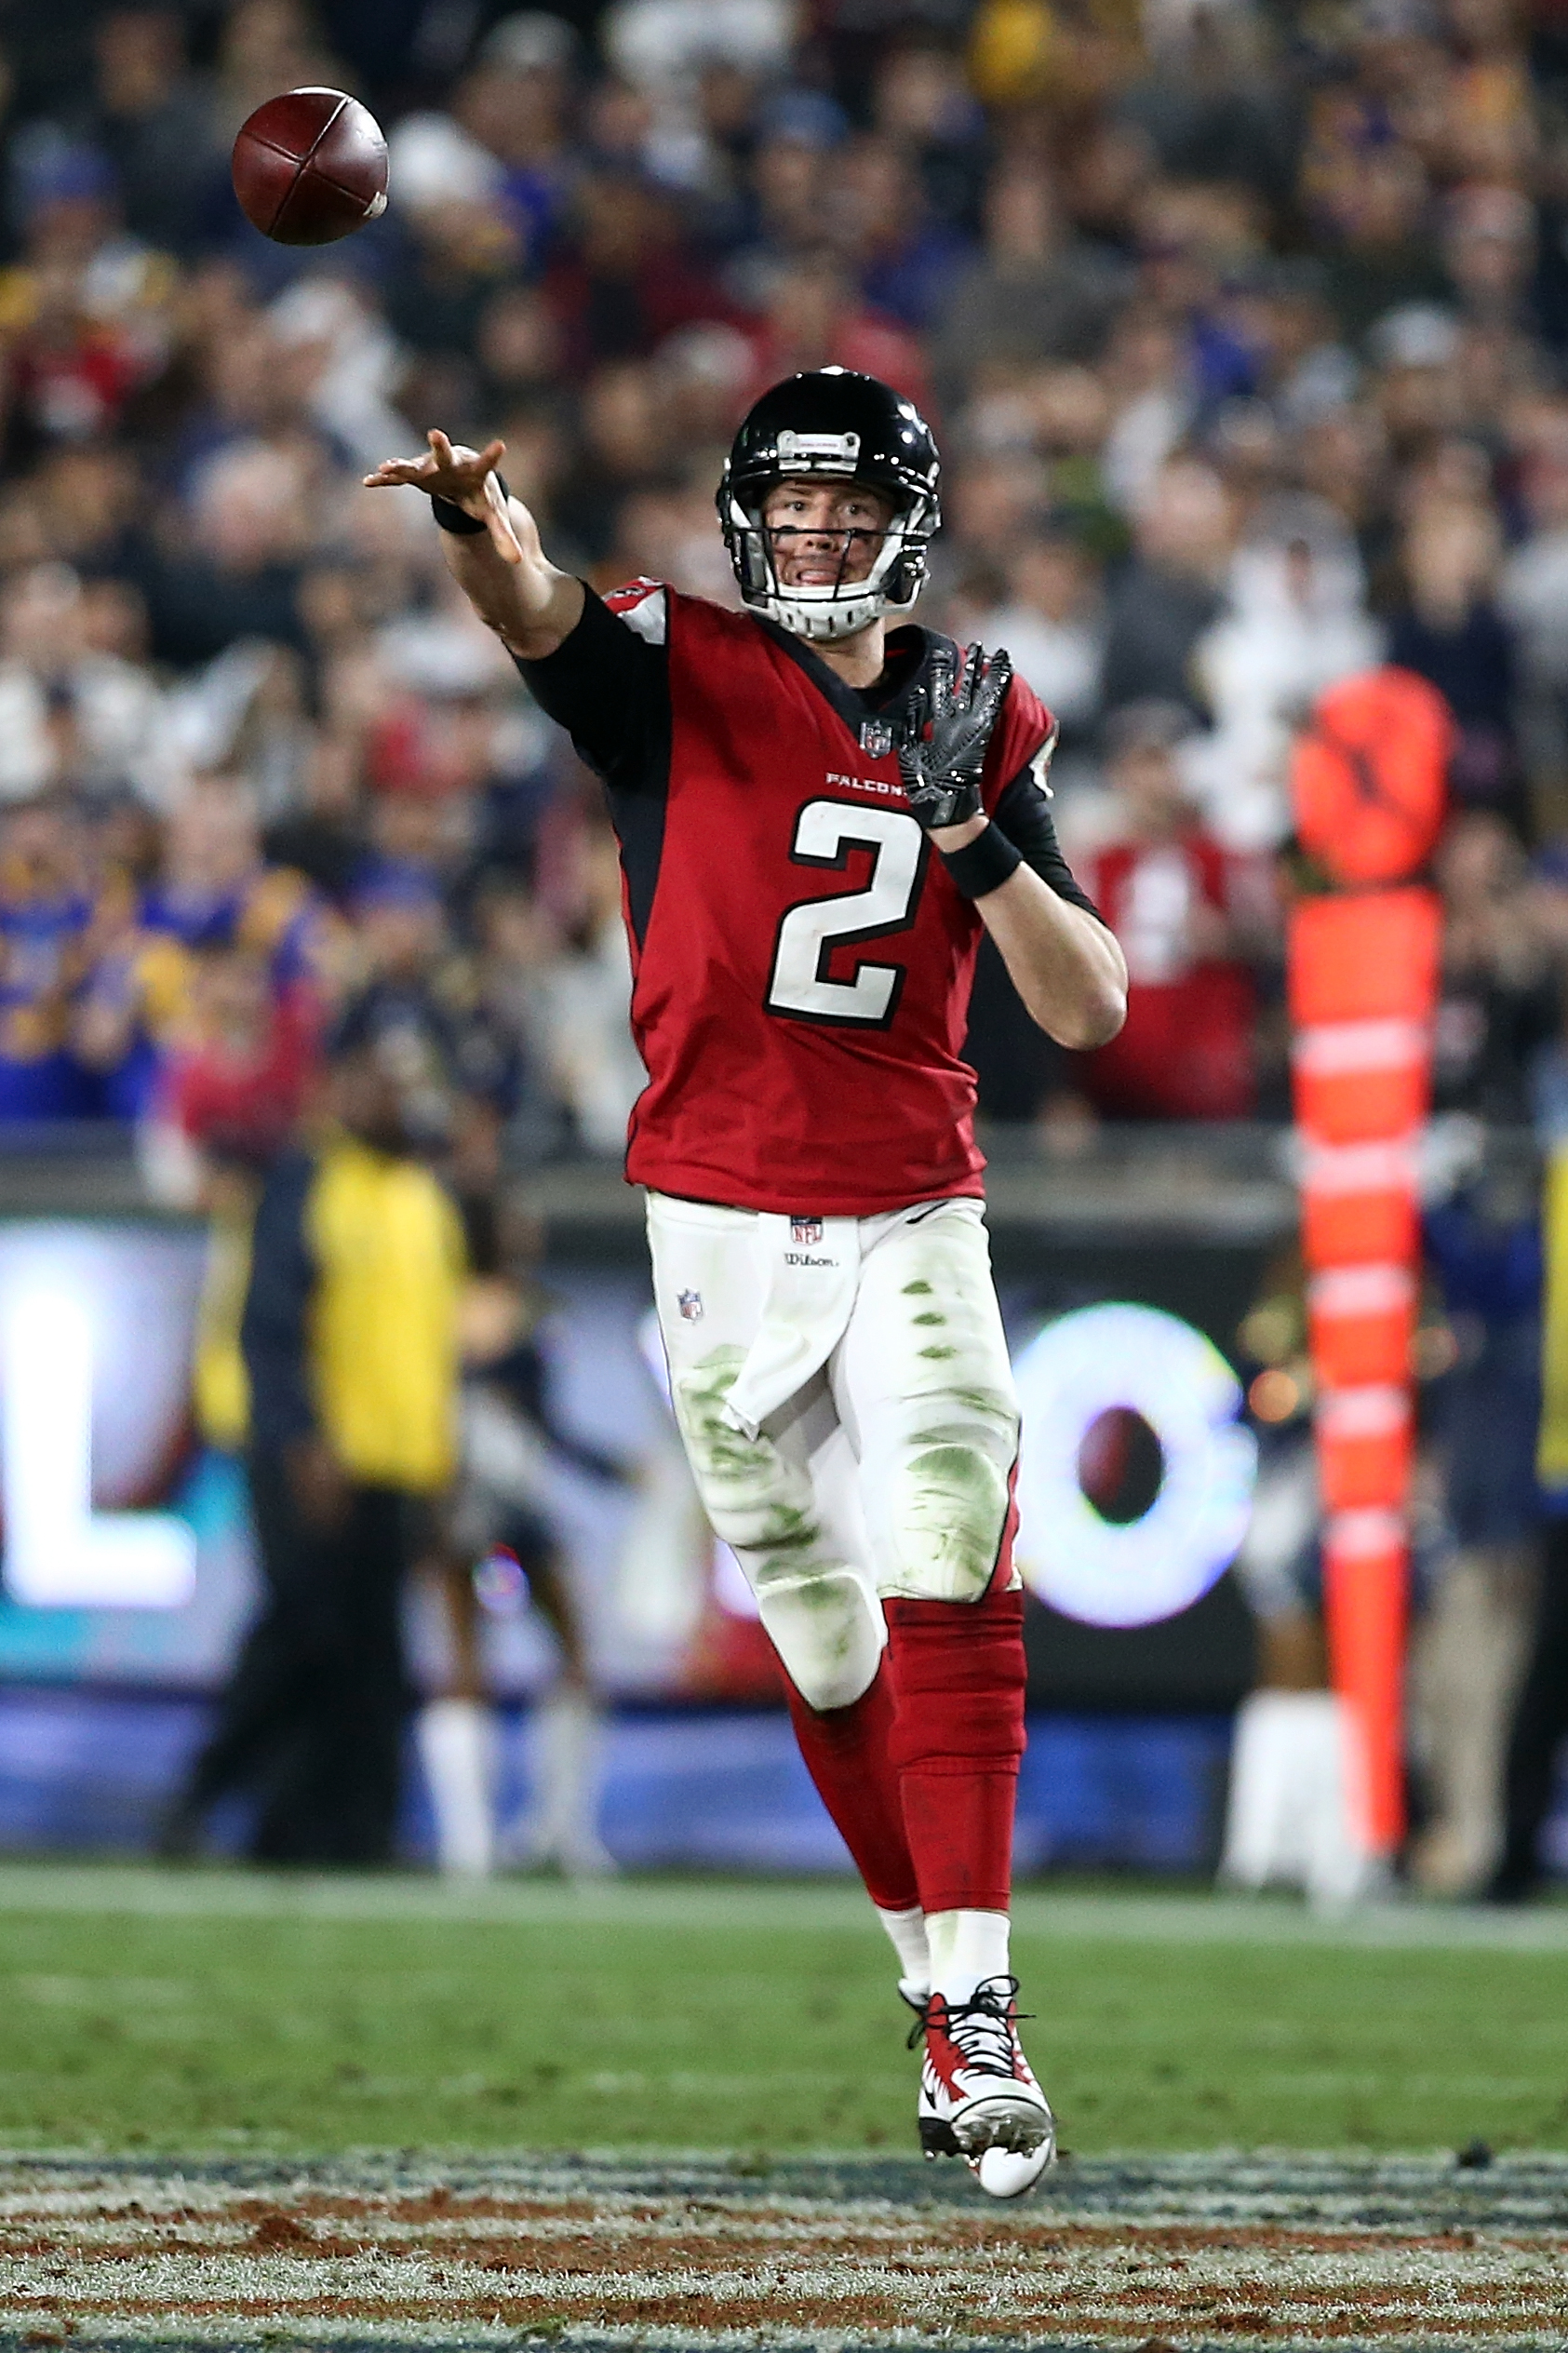 Atlanta Falcons QB Matt Ryan throws a pass against the Los Angeles Rams in the Wild Card round of the 2018 NFL Playoffs